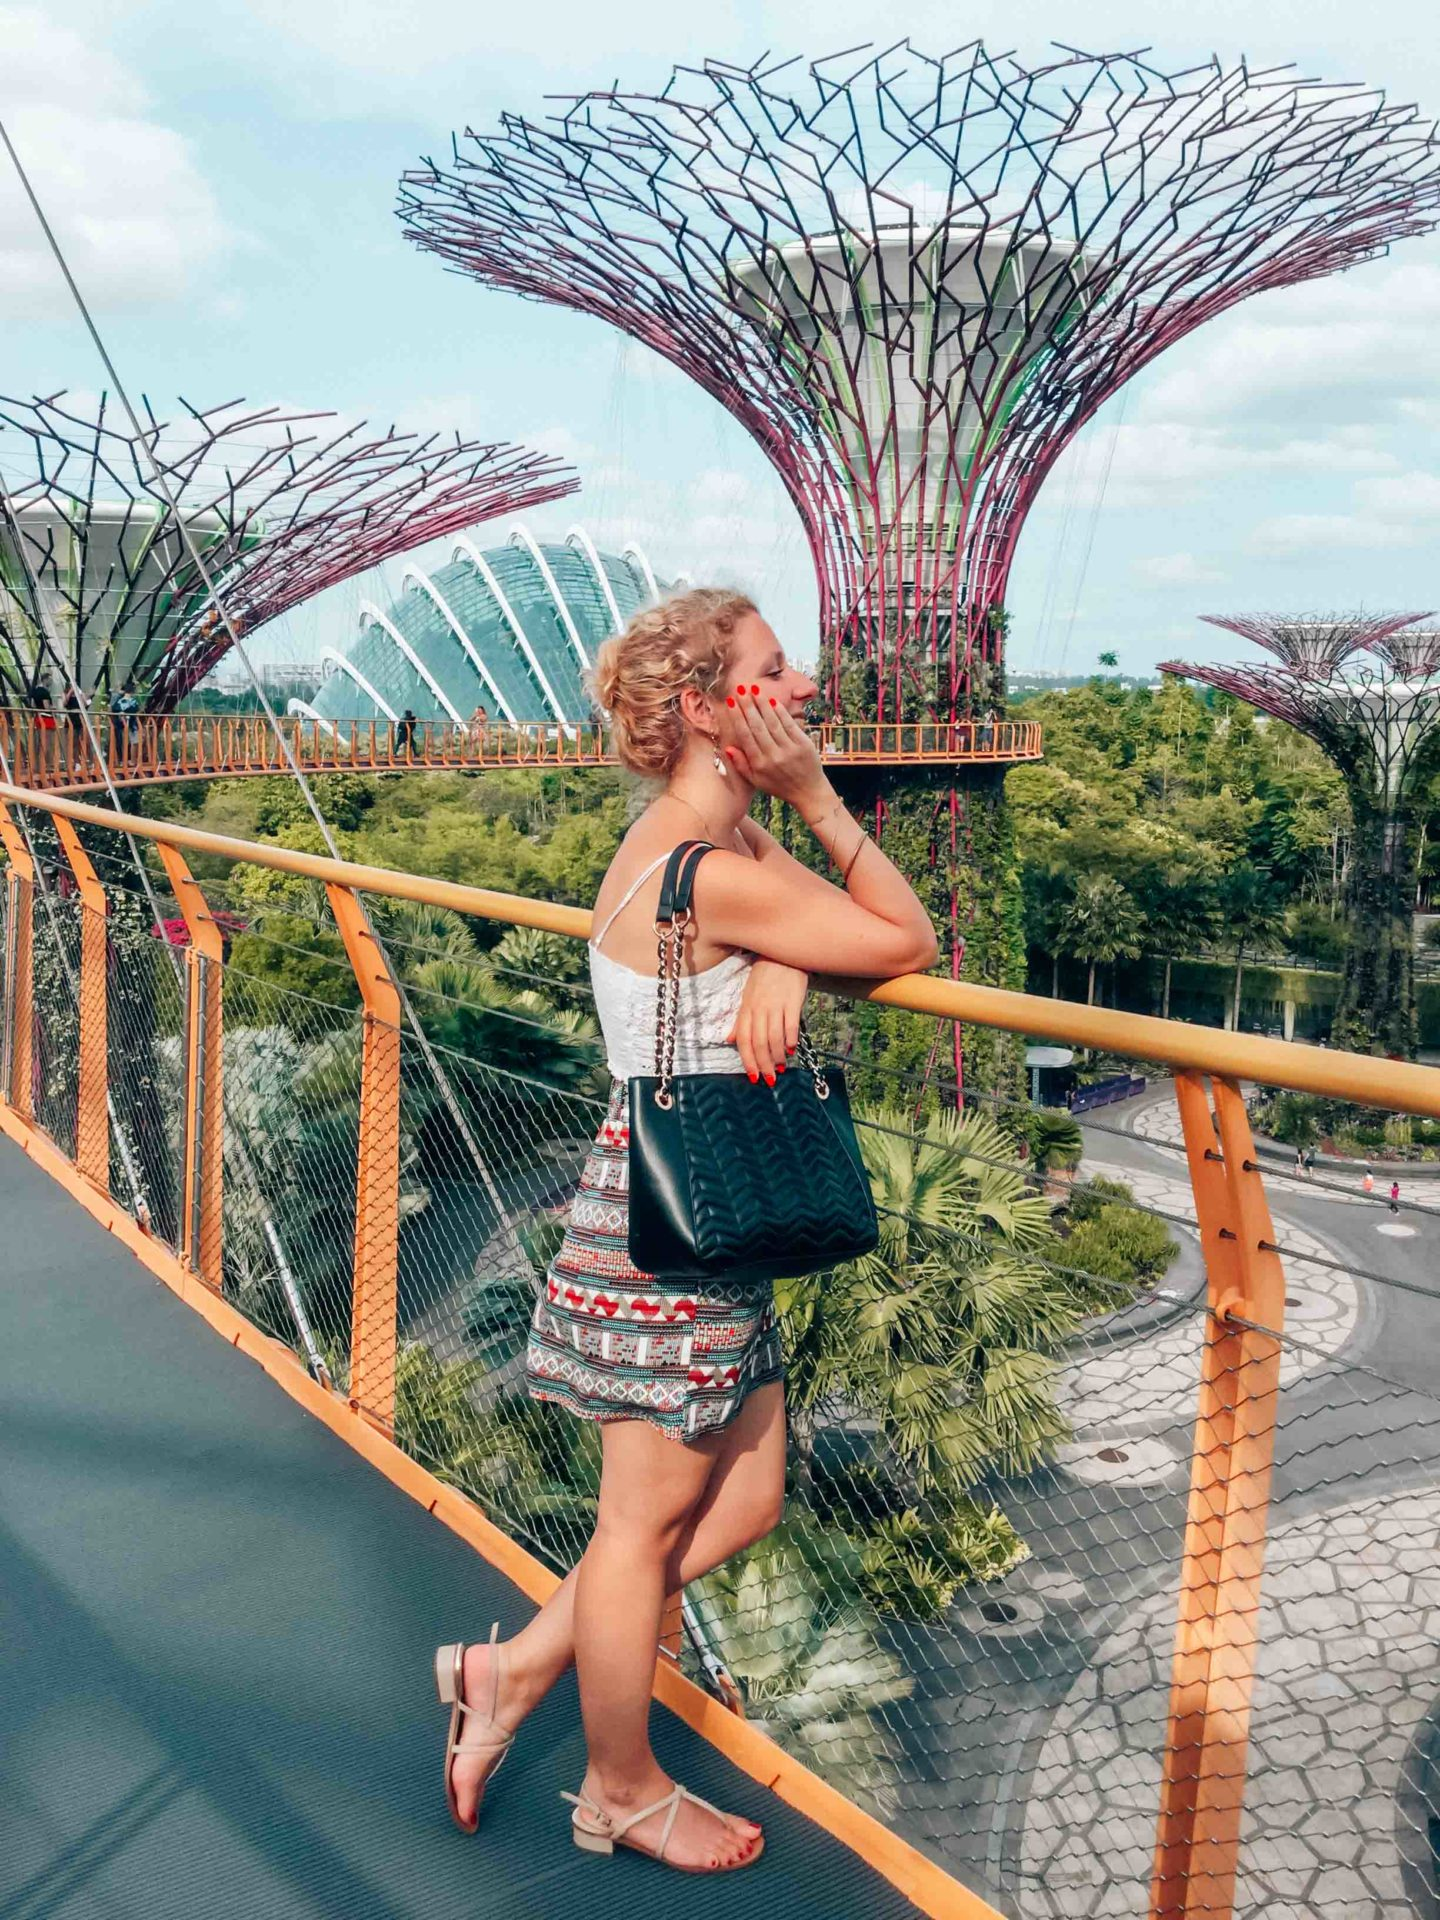 View on the Gardens by the Bay from the OCBC skyway